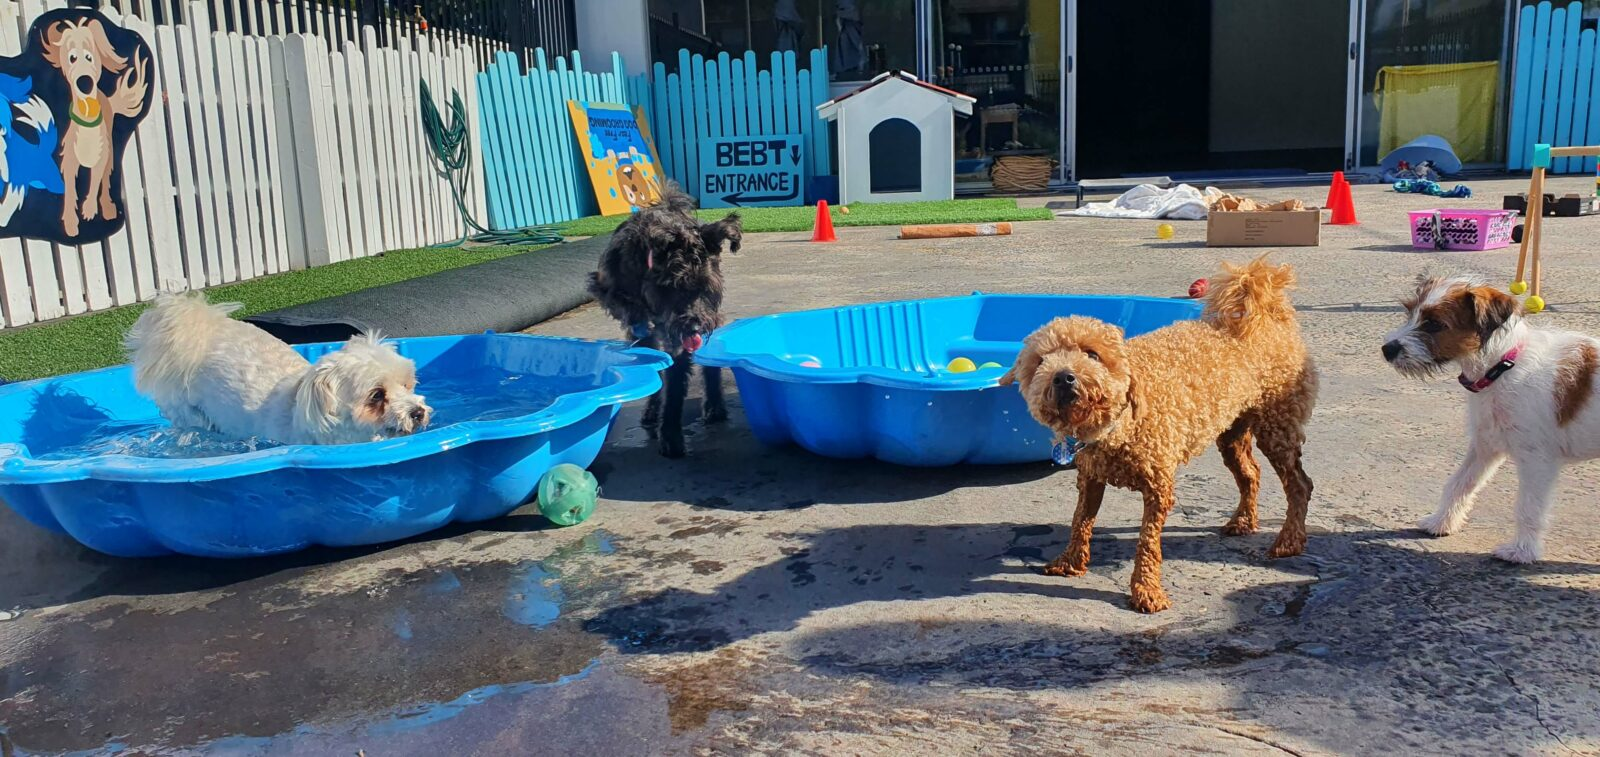 Dogs in and around pool